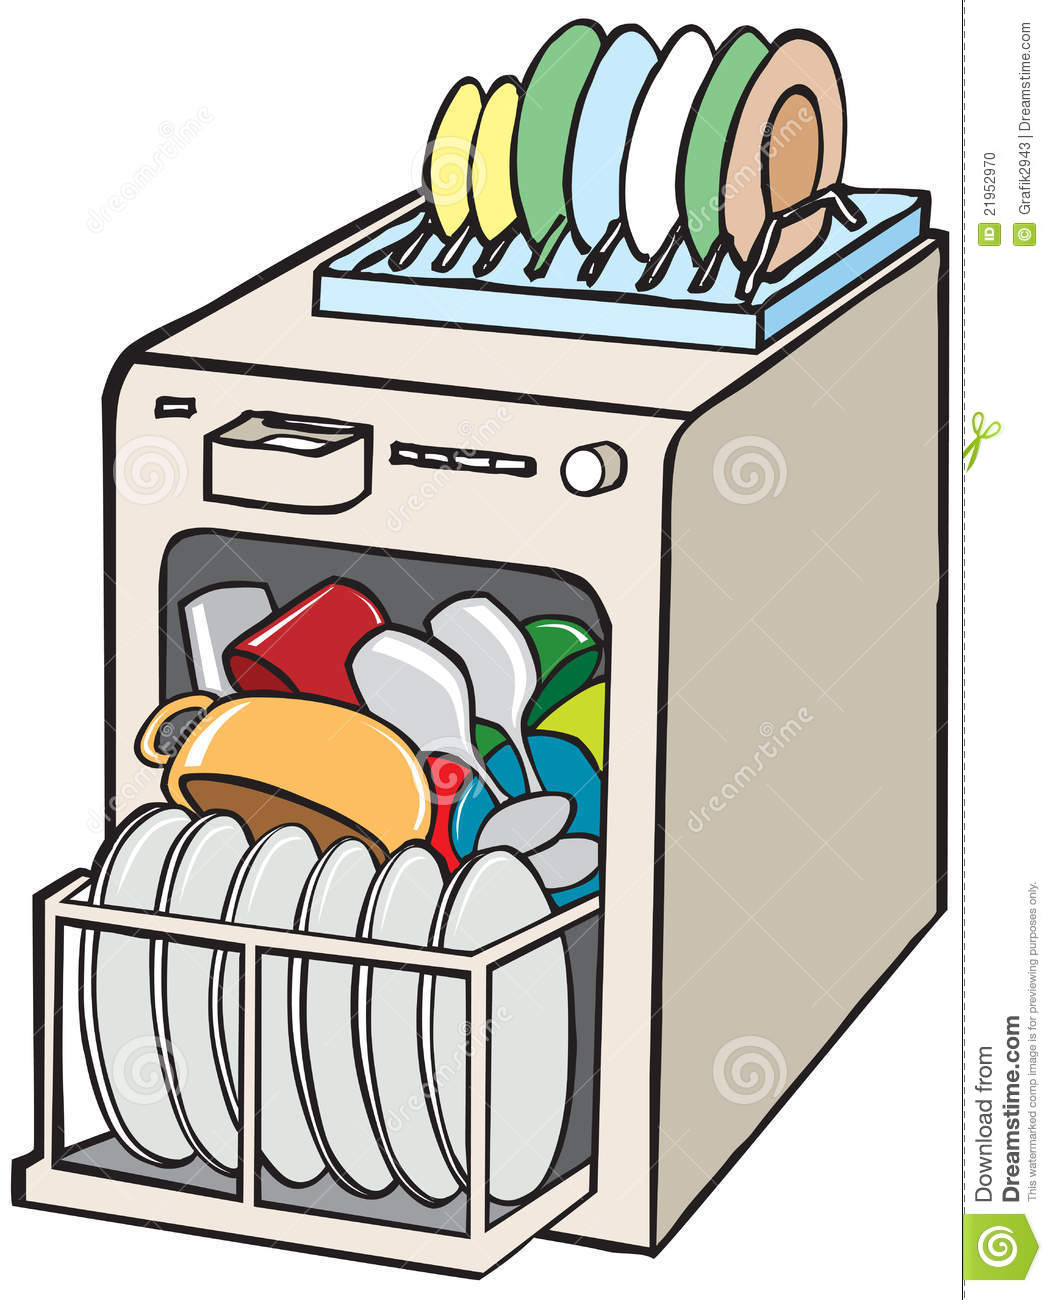 Clip art unloading . Dishes clipart